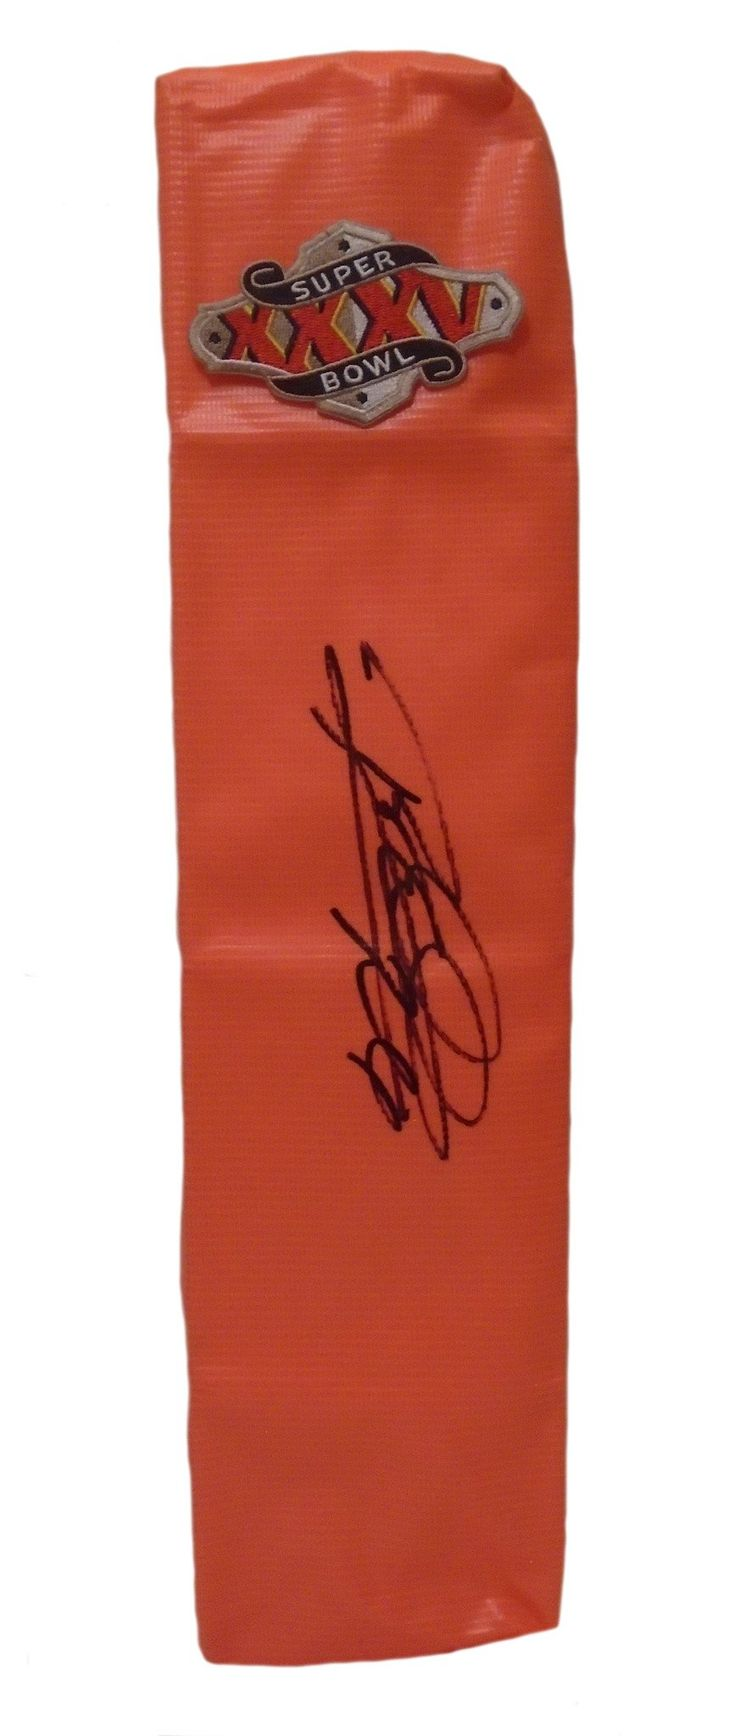 Rod Woodson Autographed Baltimore Ravens Super Bowl XXXV Full Size Football End Zone. This is a brand-new custom Rod Woodson signed Baltimore Ravens Super Bowl XXXV full sizefootball end zone pylon. This pylon measures 4inches (Width) X 4inches (Length) X 18inches (Height). Rod signed the pylonin black sharpie.Check out the photo of Rod signing for us. ** Proof photo is included for free with purchase. Please click on images to enlarge. Please browse our websitefor additional NFL…